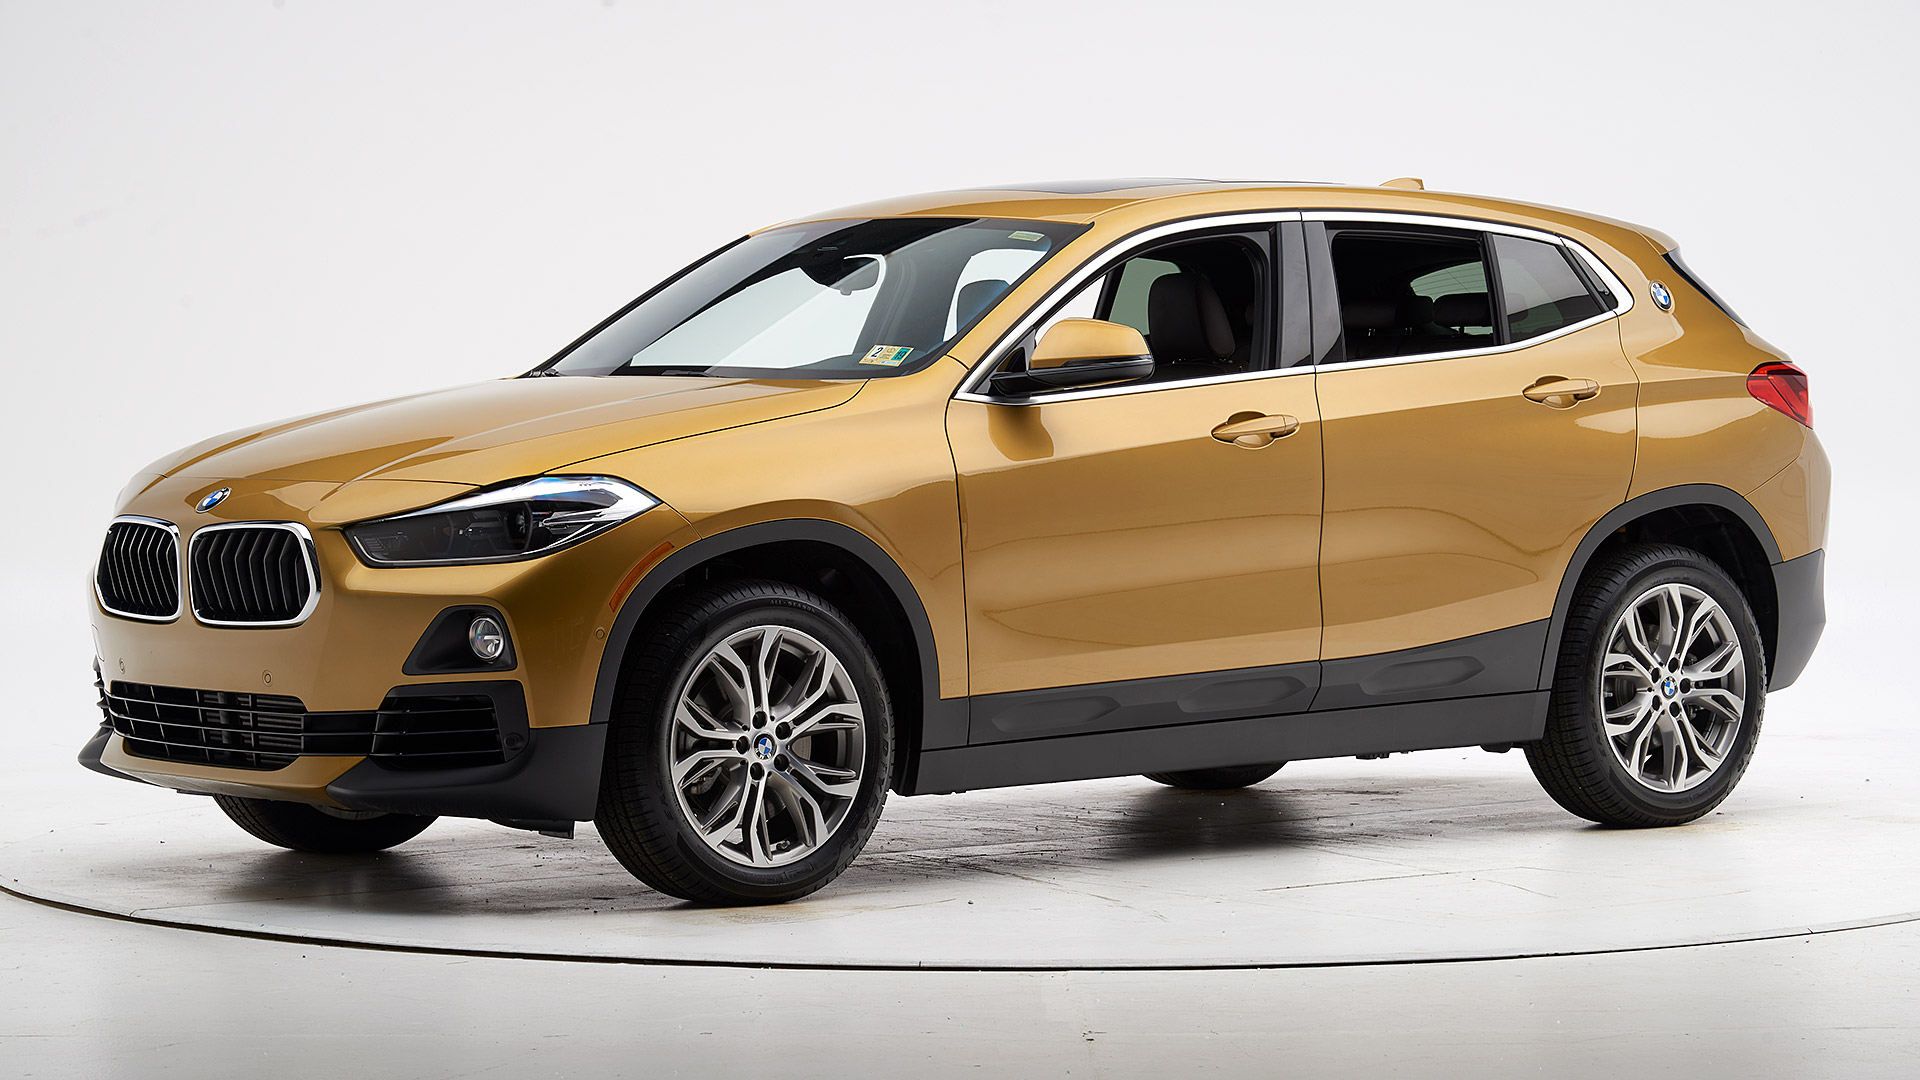 2020 BMW X2 4-door SUV